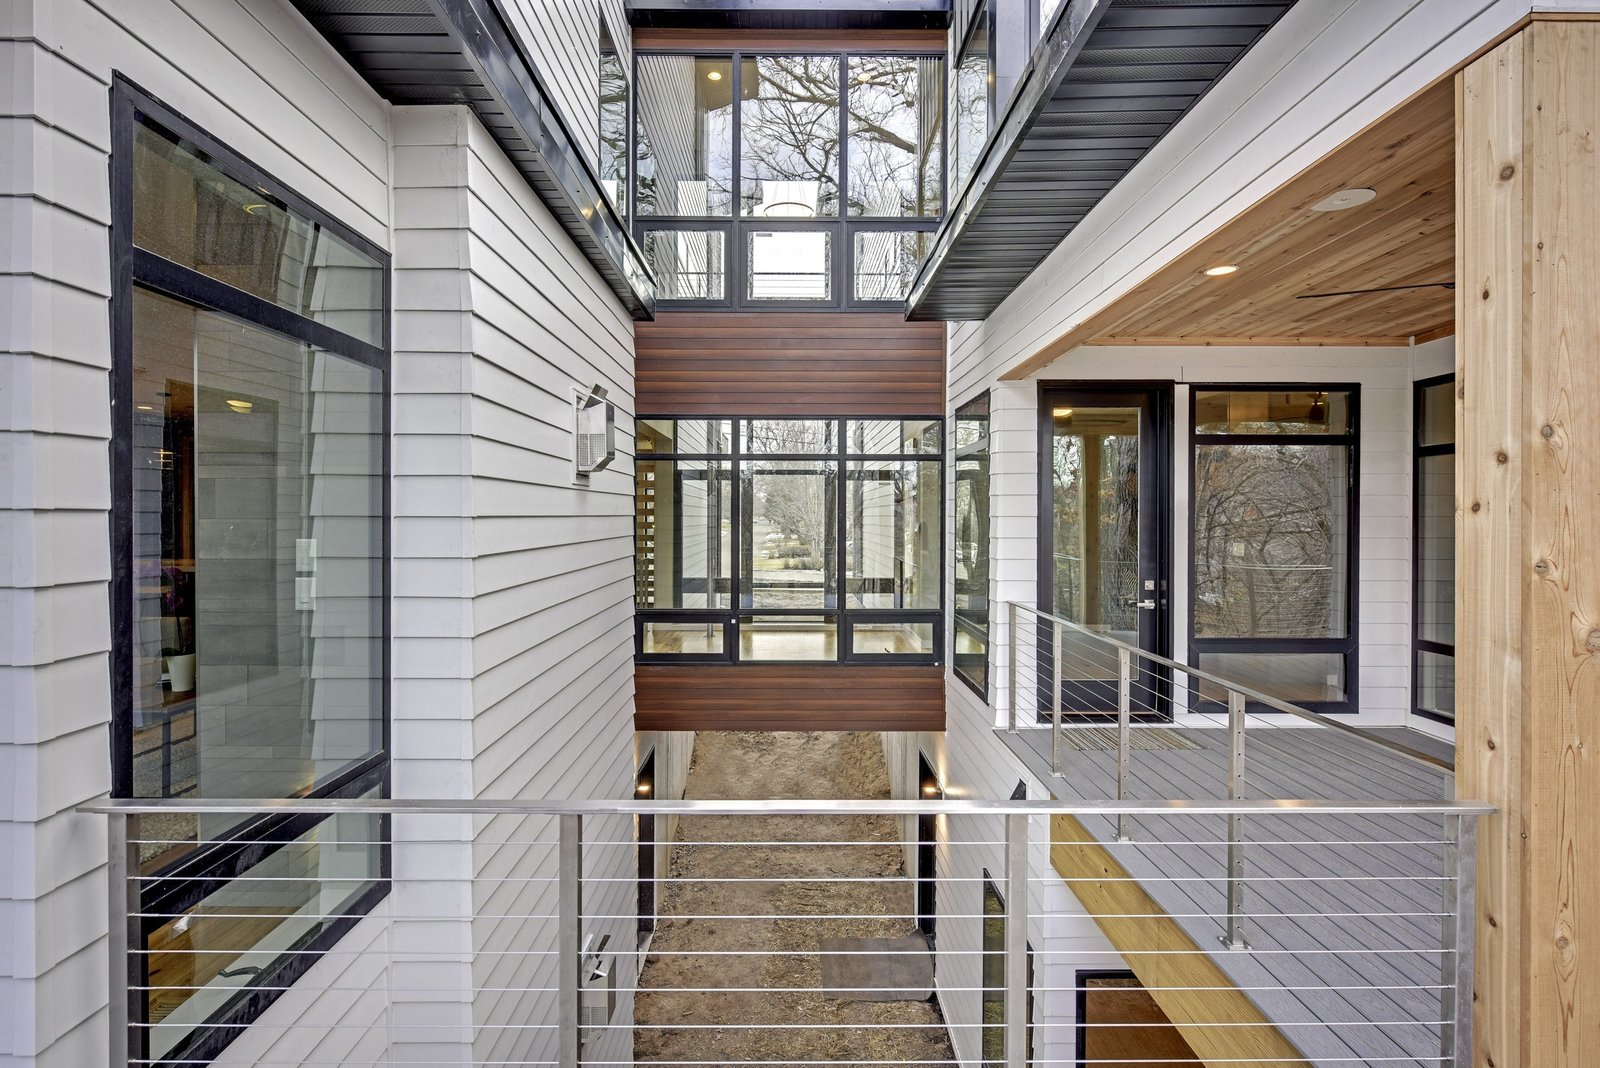 """Photo 9 of 11 in Minneapolis Modern """"Dream Home"""" Built by Sustainable 9 Design + Build"""